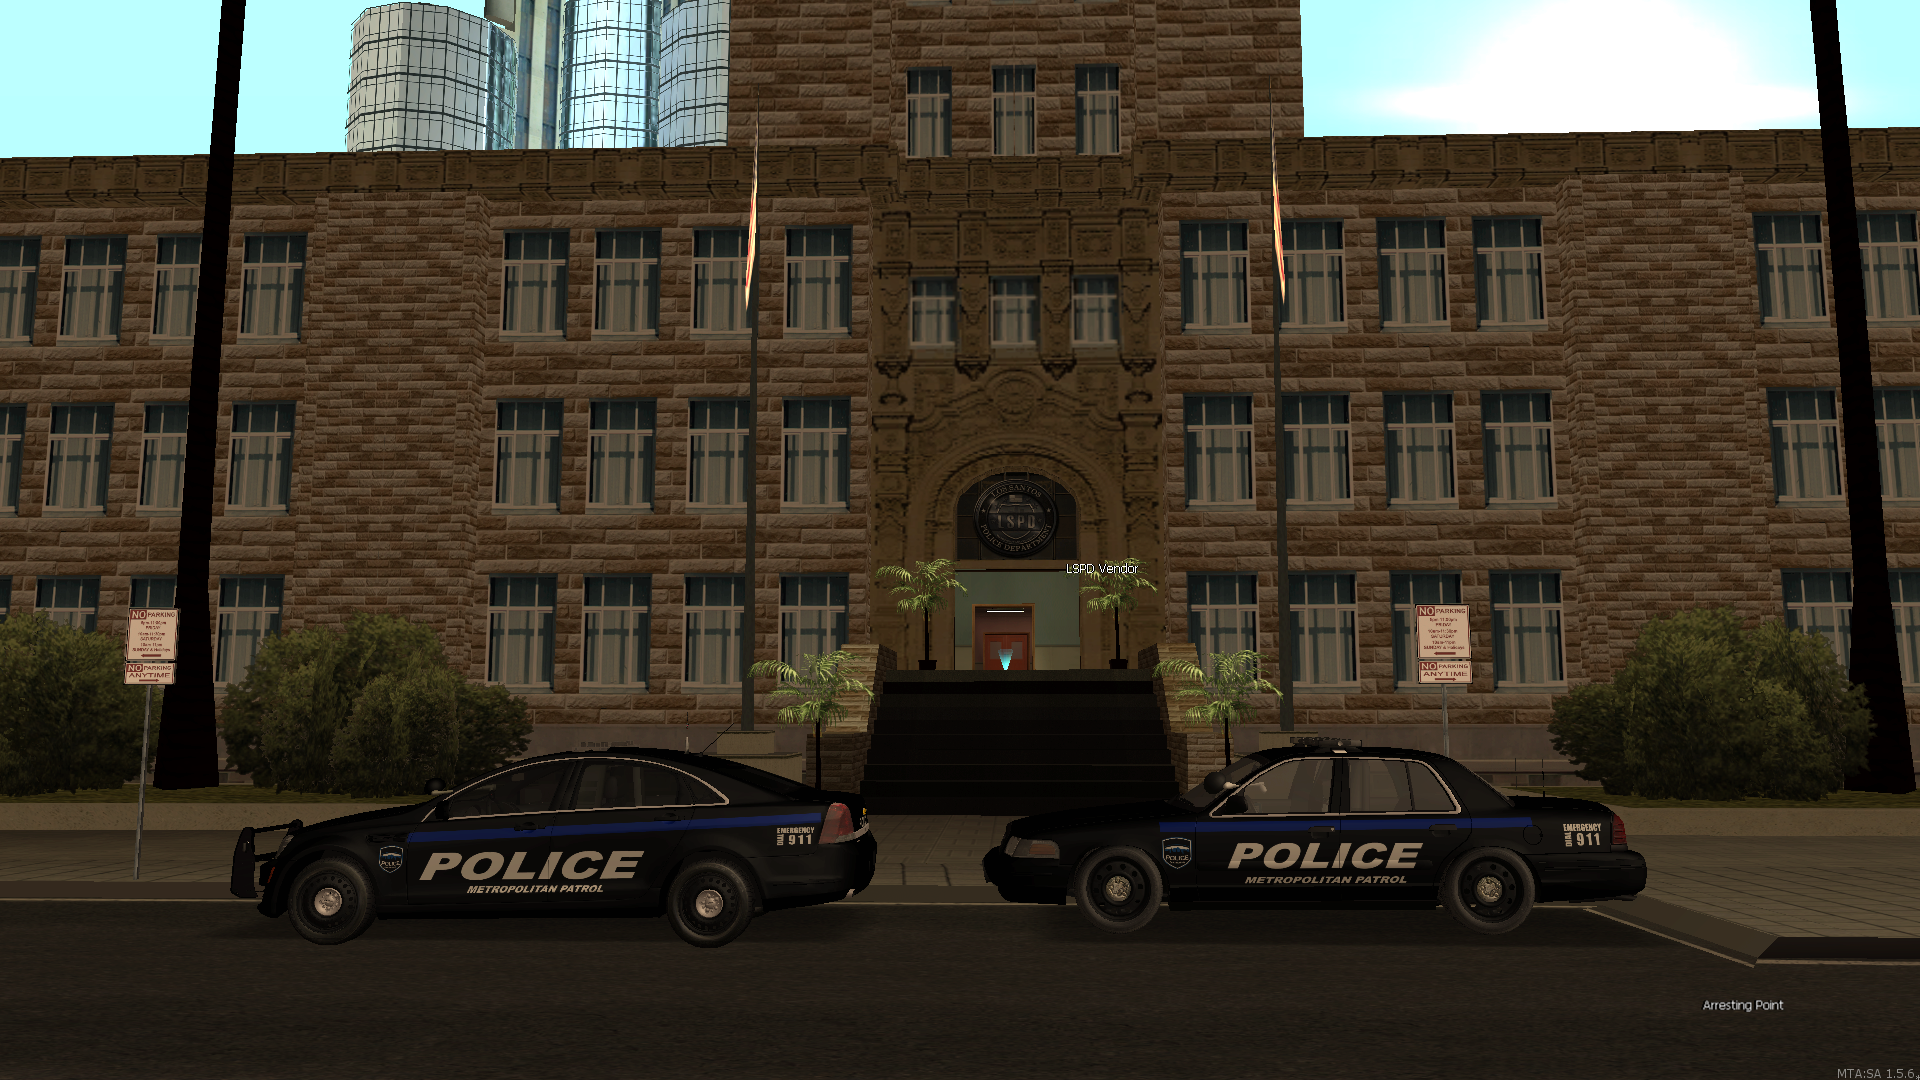 Pershing Square Police Station - posted by Chico2